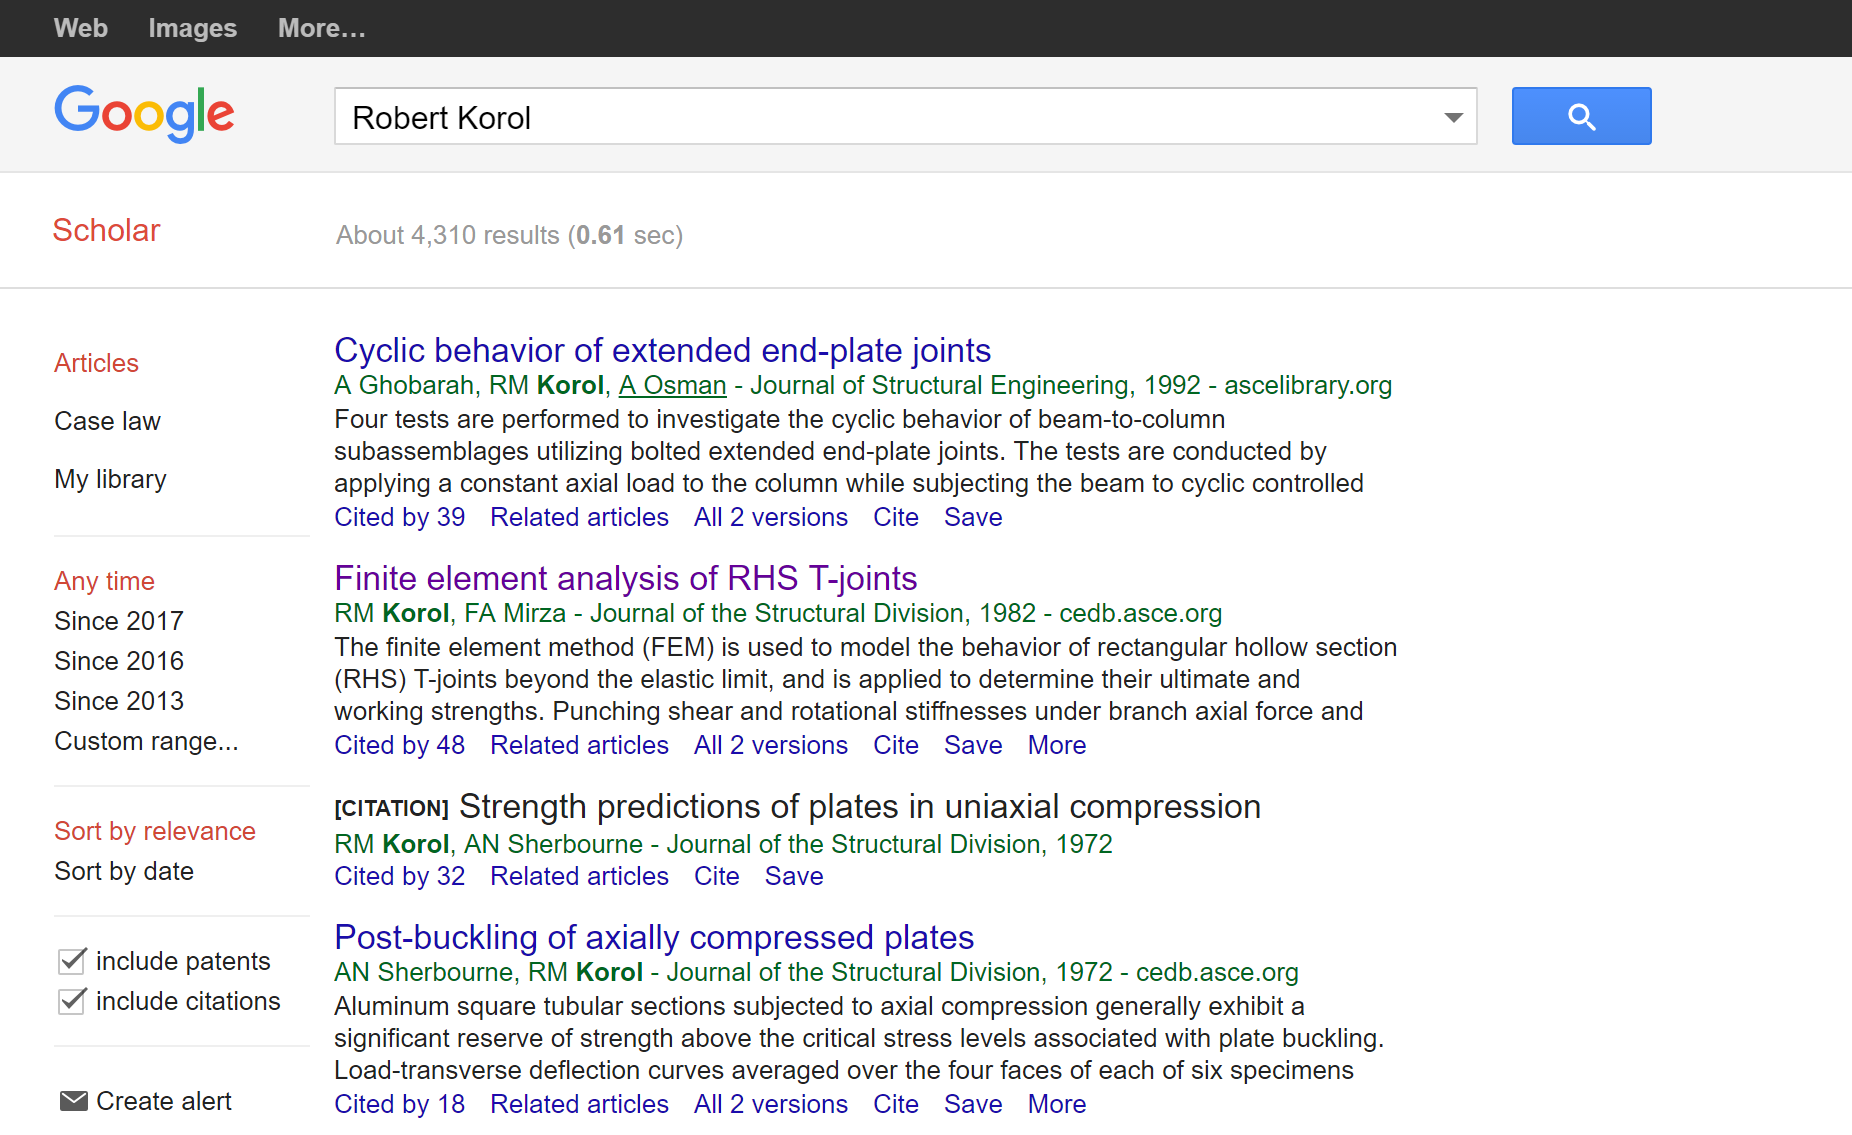 007 How To Publish Research Paper On Google Scholar Dreaded Full